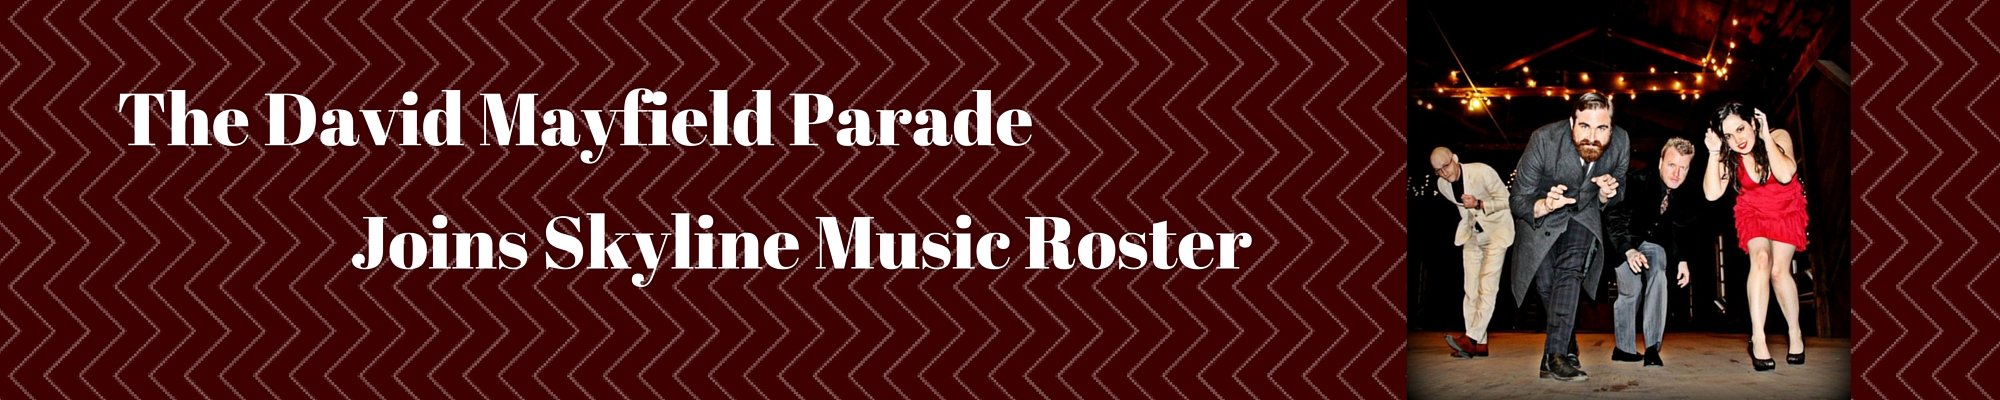 Web Banner-The David Mayfield Parade